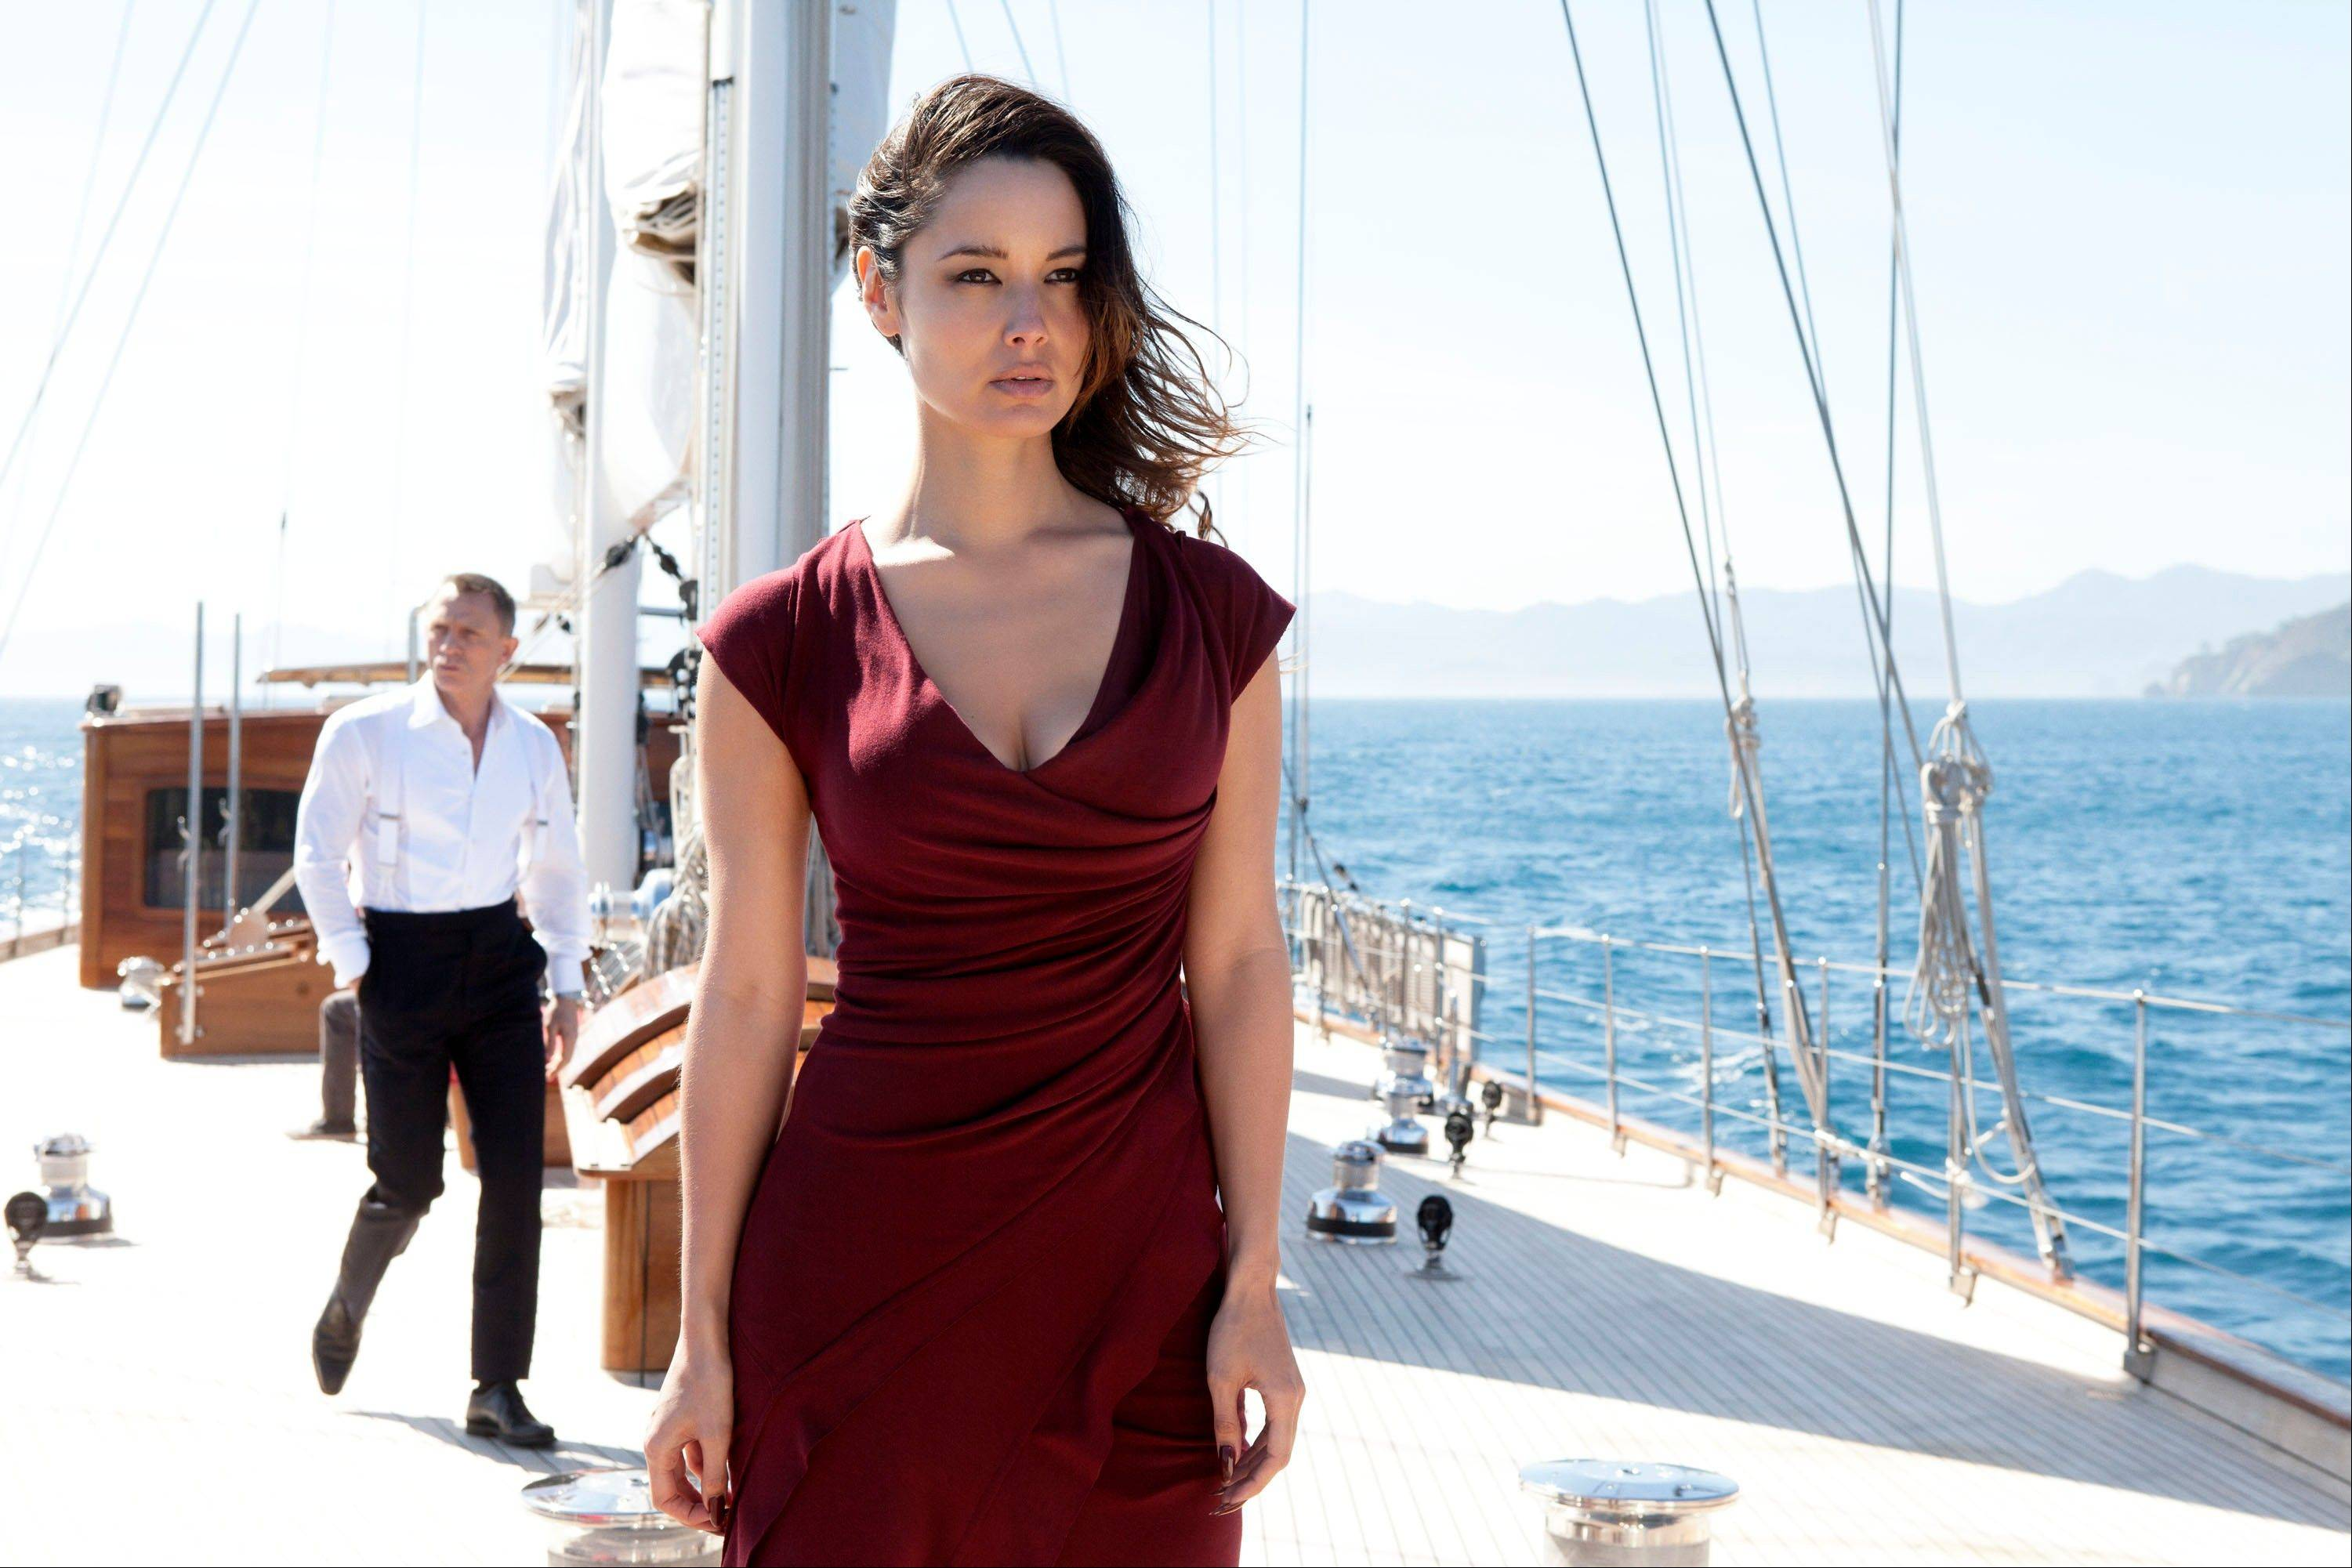 This film image released by Sony Pictures shows Berenice Marlohe in a scene from the film �Skyfall.� Costume designer Jany Temime says her mantra for the entire wardrobe of �Skyfall,� which opens Friday, was �iconic for 2012.� For Marlohe, Temime envisioned an Ava Gardner type. She required two knockout gowns, one a second-skin L�Wren Scott number that Marlohe had to be sewn into each morning, and a red, slinky Donna Karan.